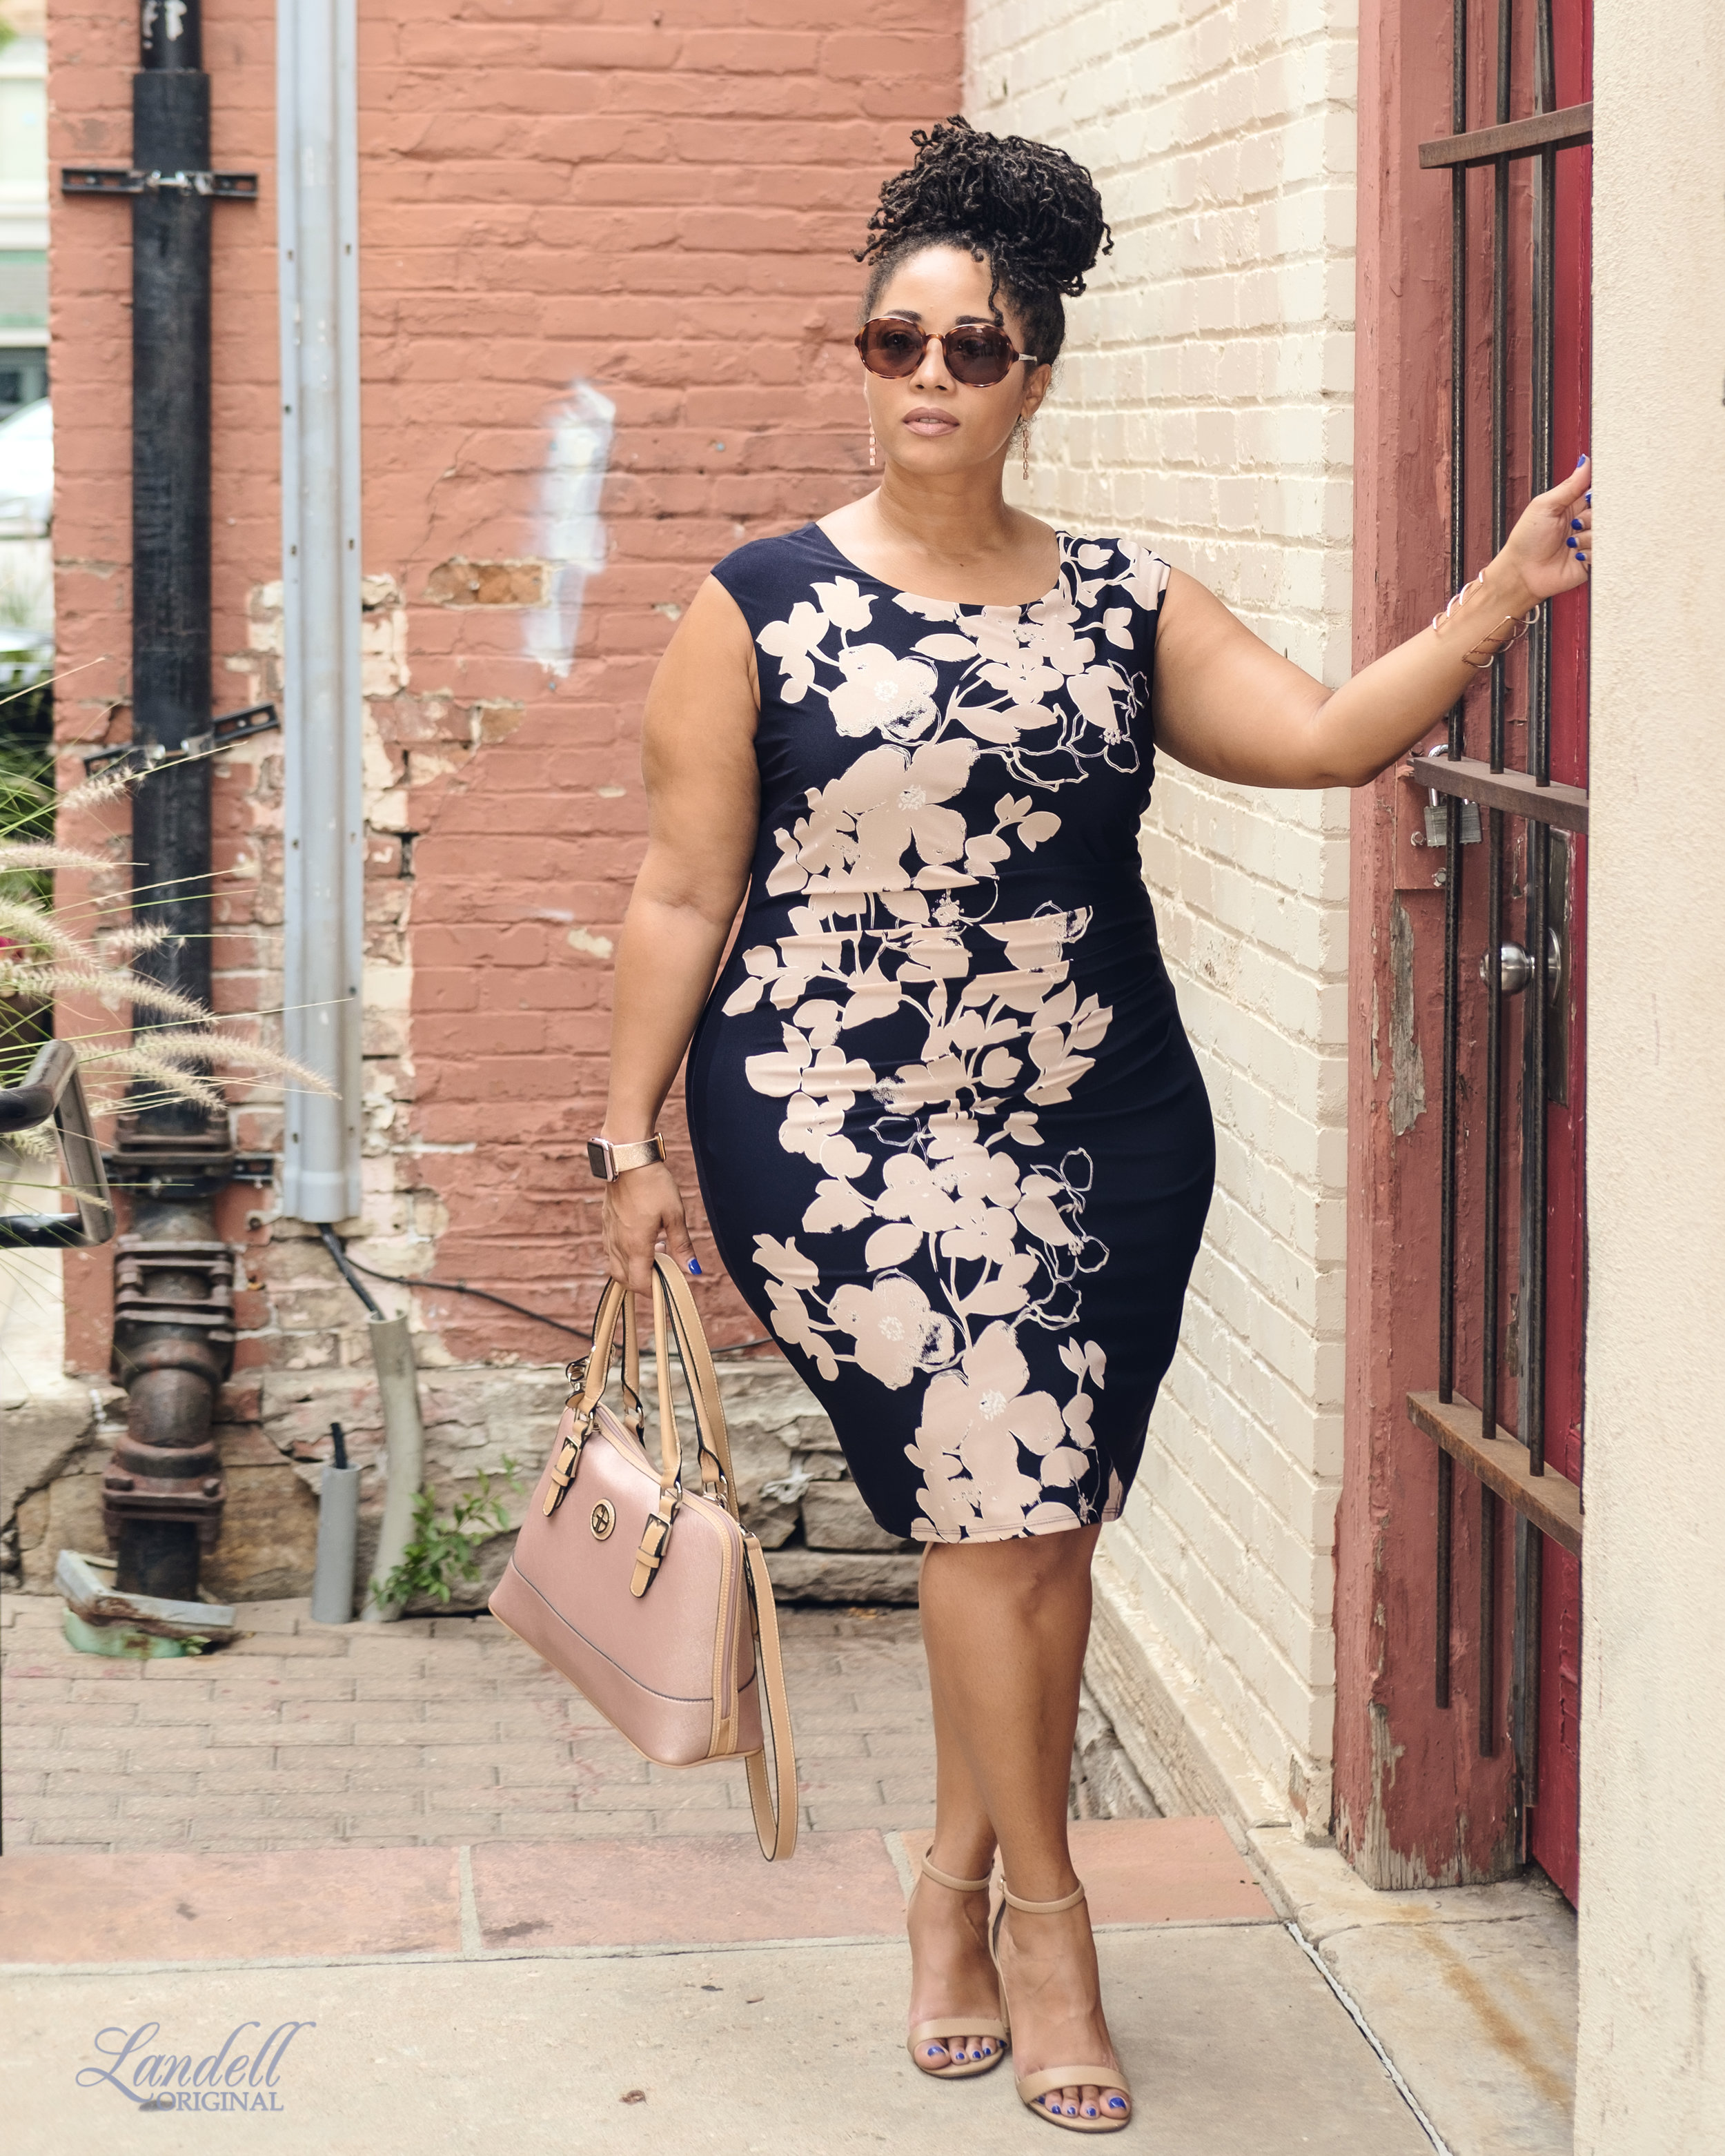 ...Look Details.. - Dress: Jessica Howard (courtesy of Gwynnie Bee)Bag: Gianni BerniniShoes: Dream PairsSunglasses: Toms (similar here) (all pics in this article courtesy of Ryan Landell)